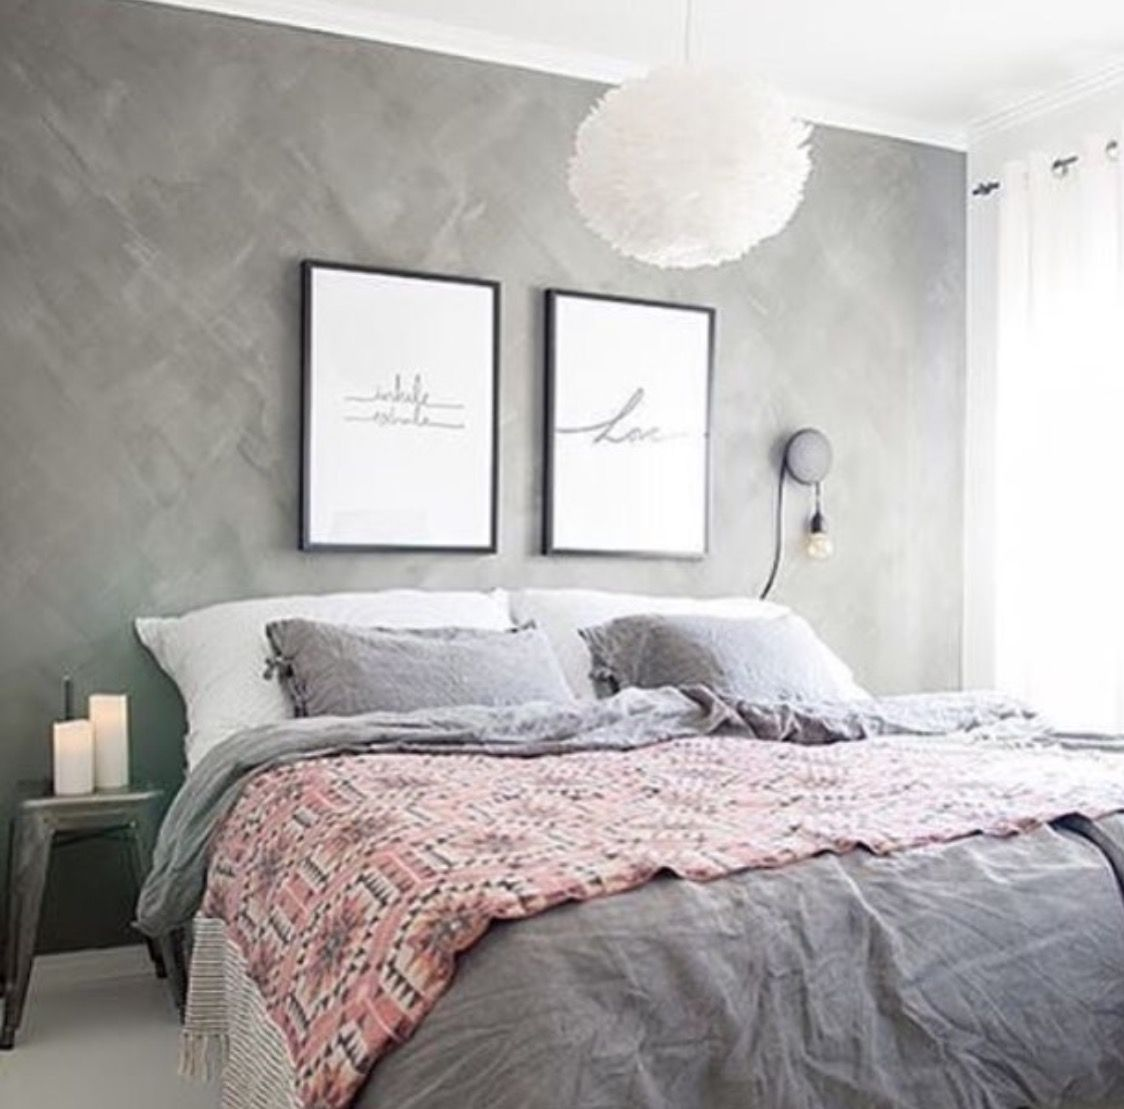 Teen S Bedroom With Feature Grey Wall And Monochrome Bed Linen: Pin By €�Just Live~ On Tumblr Room Diys